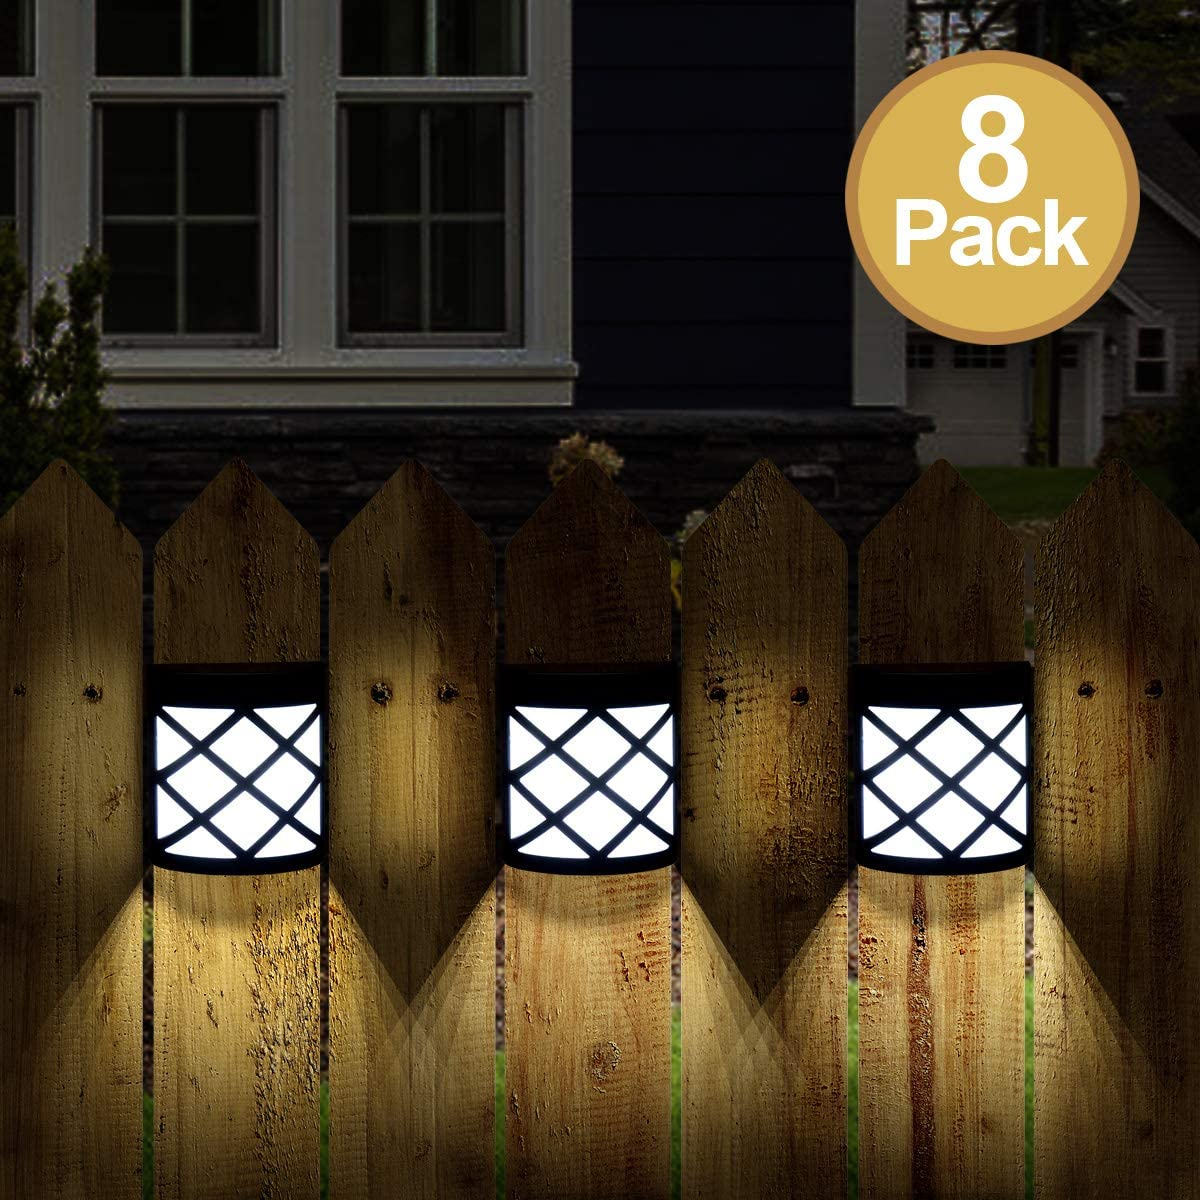 GIGALUMI 8 Pack Solar Fence Lights,6 LED Solar Deck Ligths,Waterproof Automatic Decorative Outdoor Solar Wall Lights for Deck, Patio, Stairs, Yard, Path and Driveway. Cold White